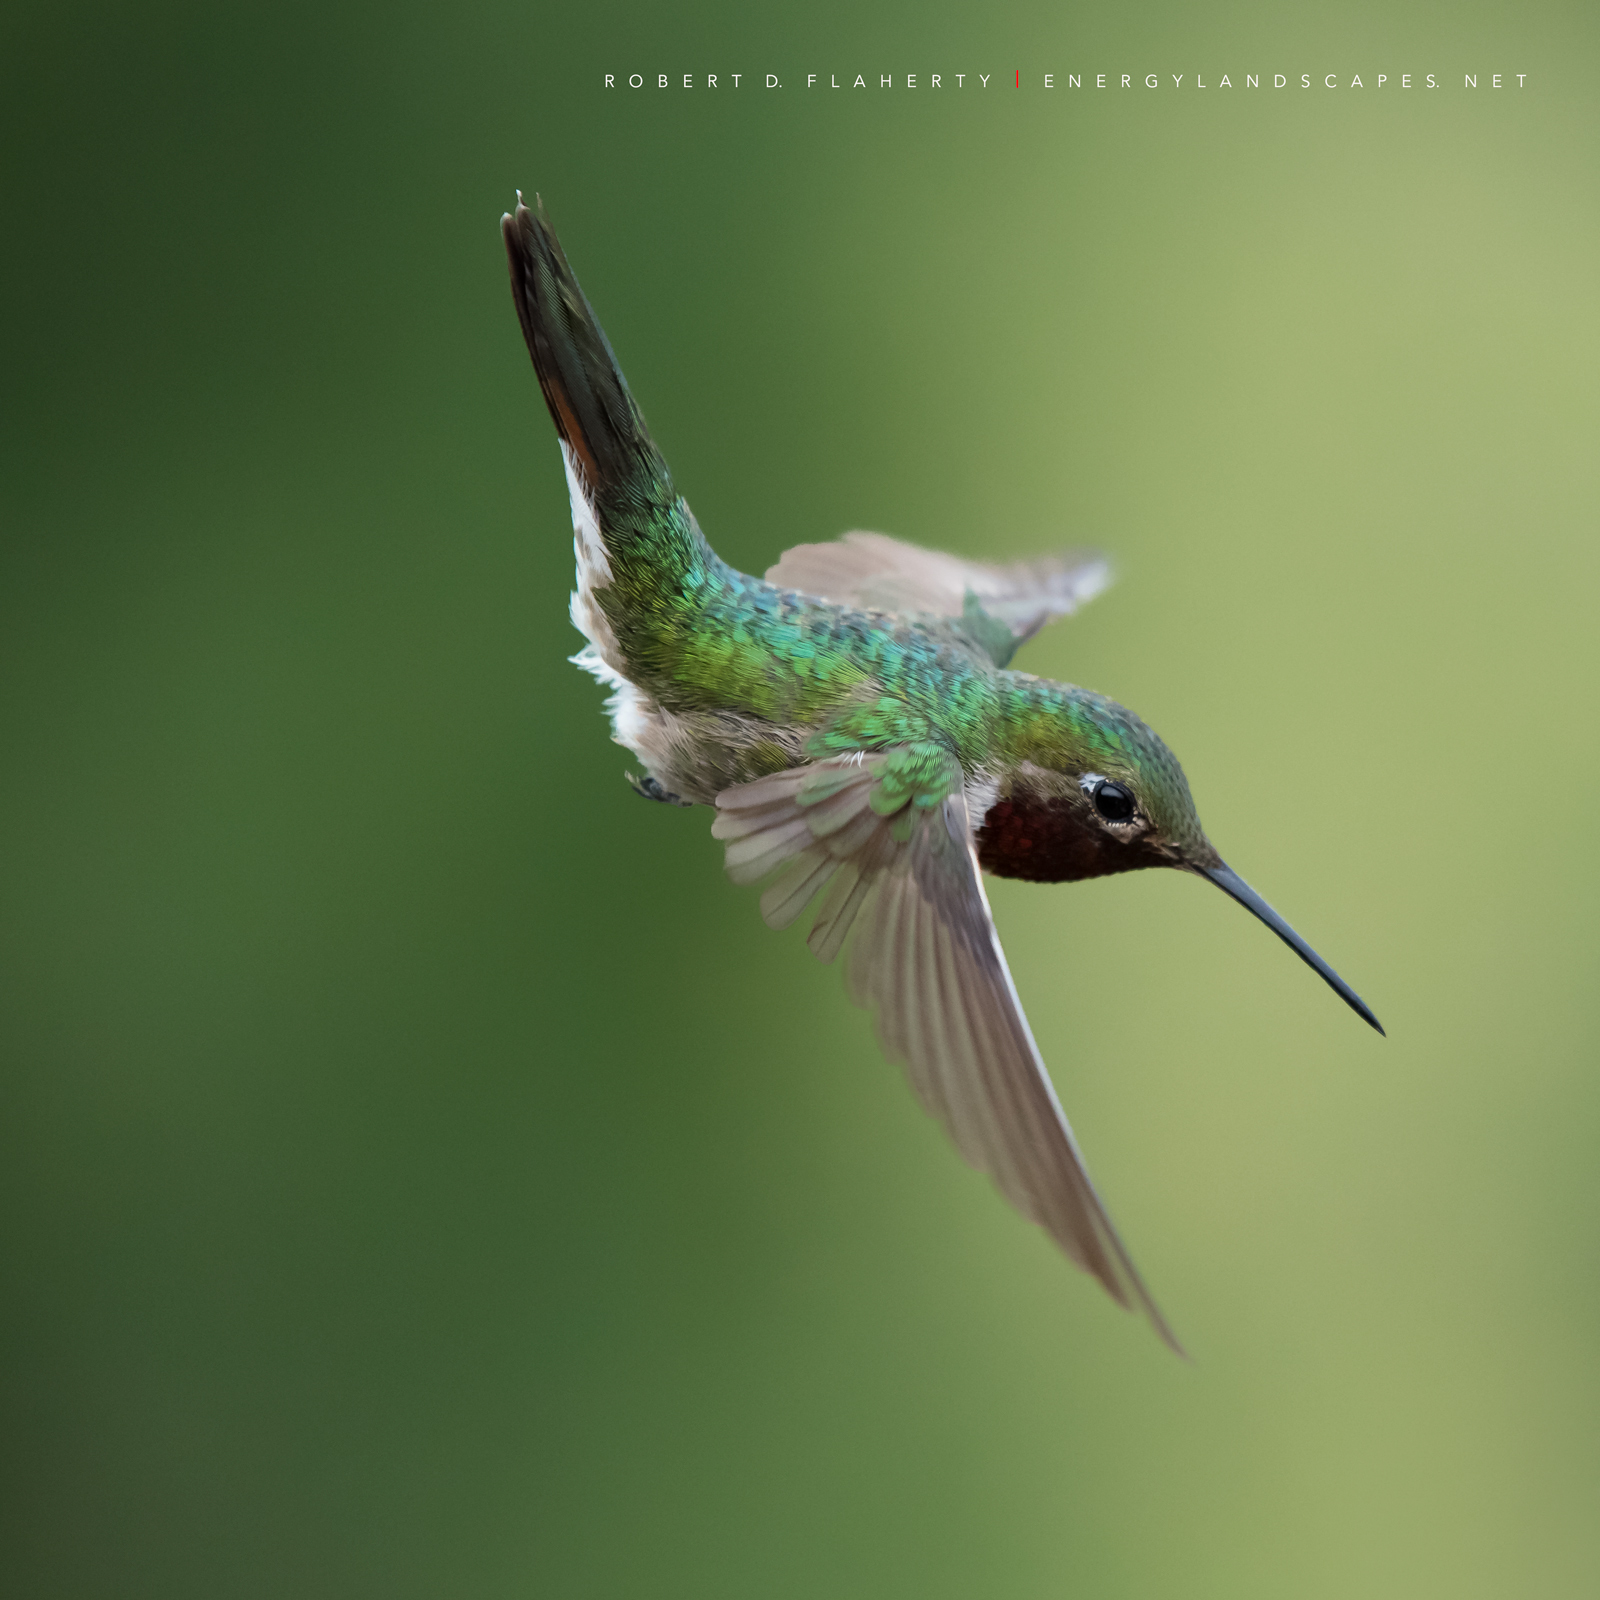 hummingbird, hummingbirds, fine art photography, New Mexico, South Central Mountains, monsoon, Ruidoso, Ruidoso New Mexico, rain, Thunderstorm, fine art, New Mexico fine art landscape photography, photo